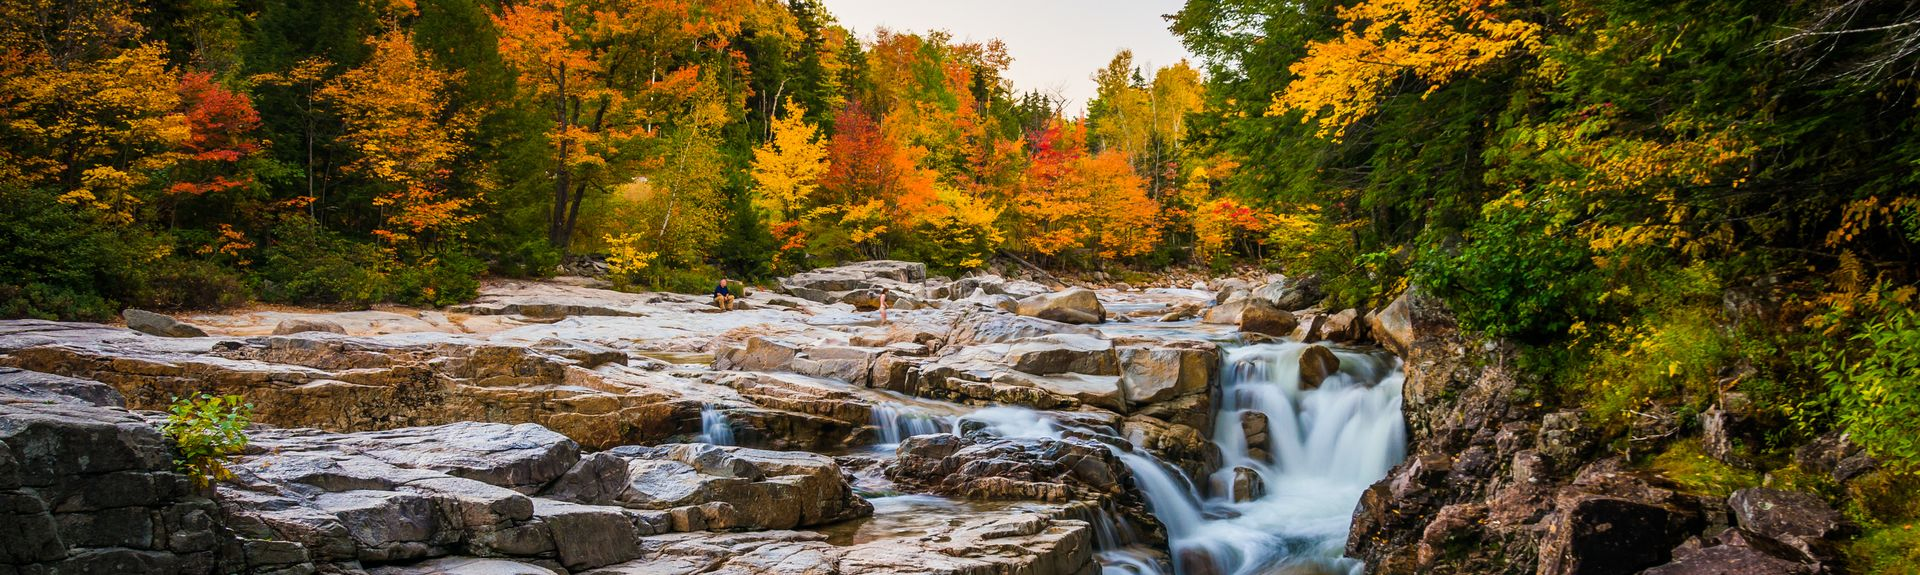 White Mountains, New Hampshire, USA